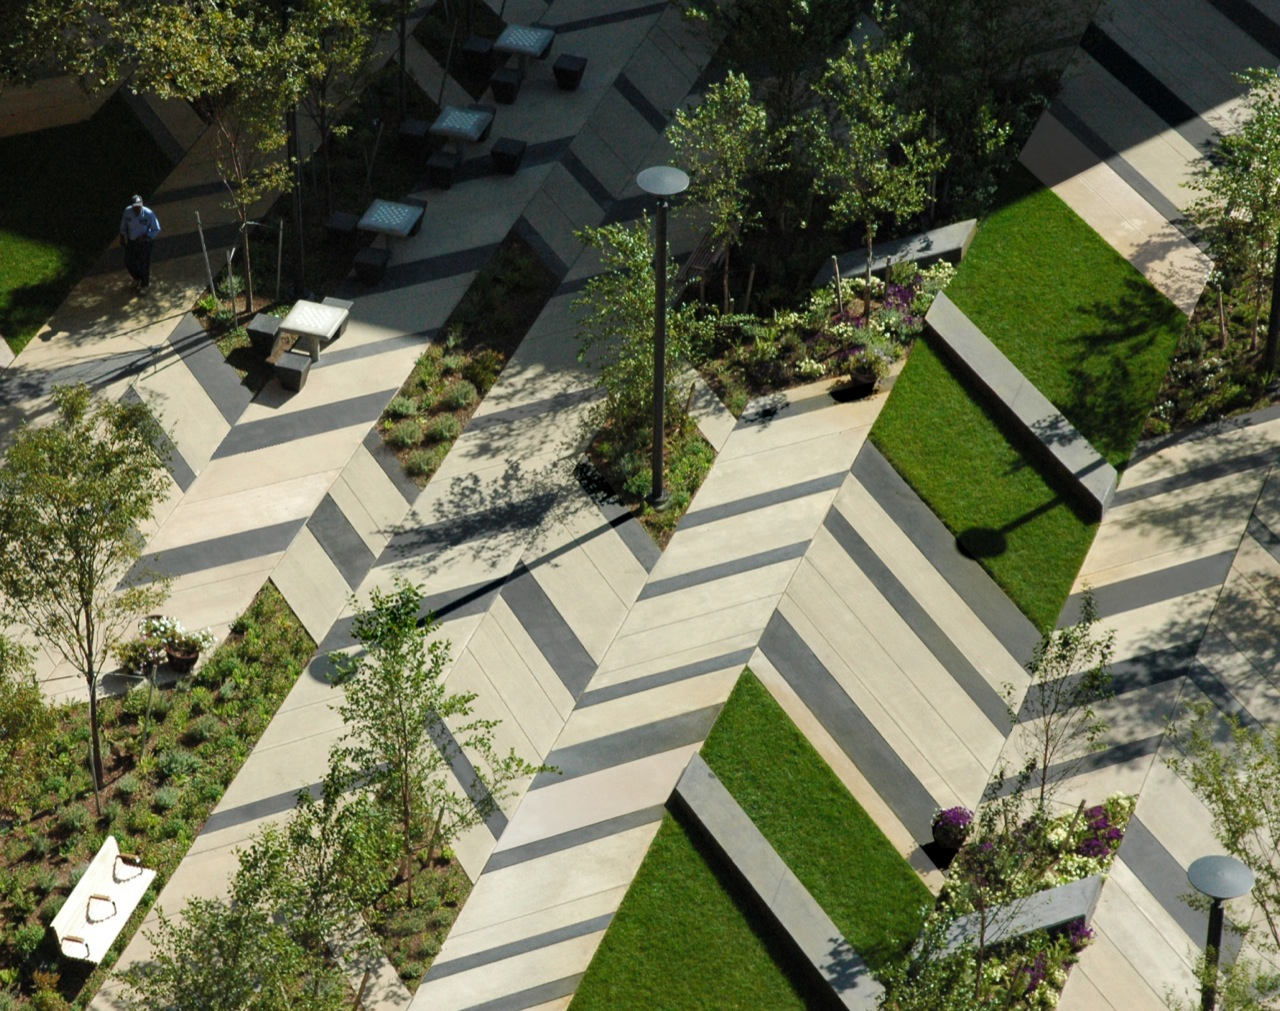 Sports news levinson plaza mission park by mikyoung kim for Park landscape design